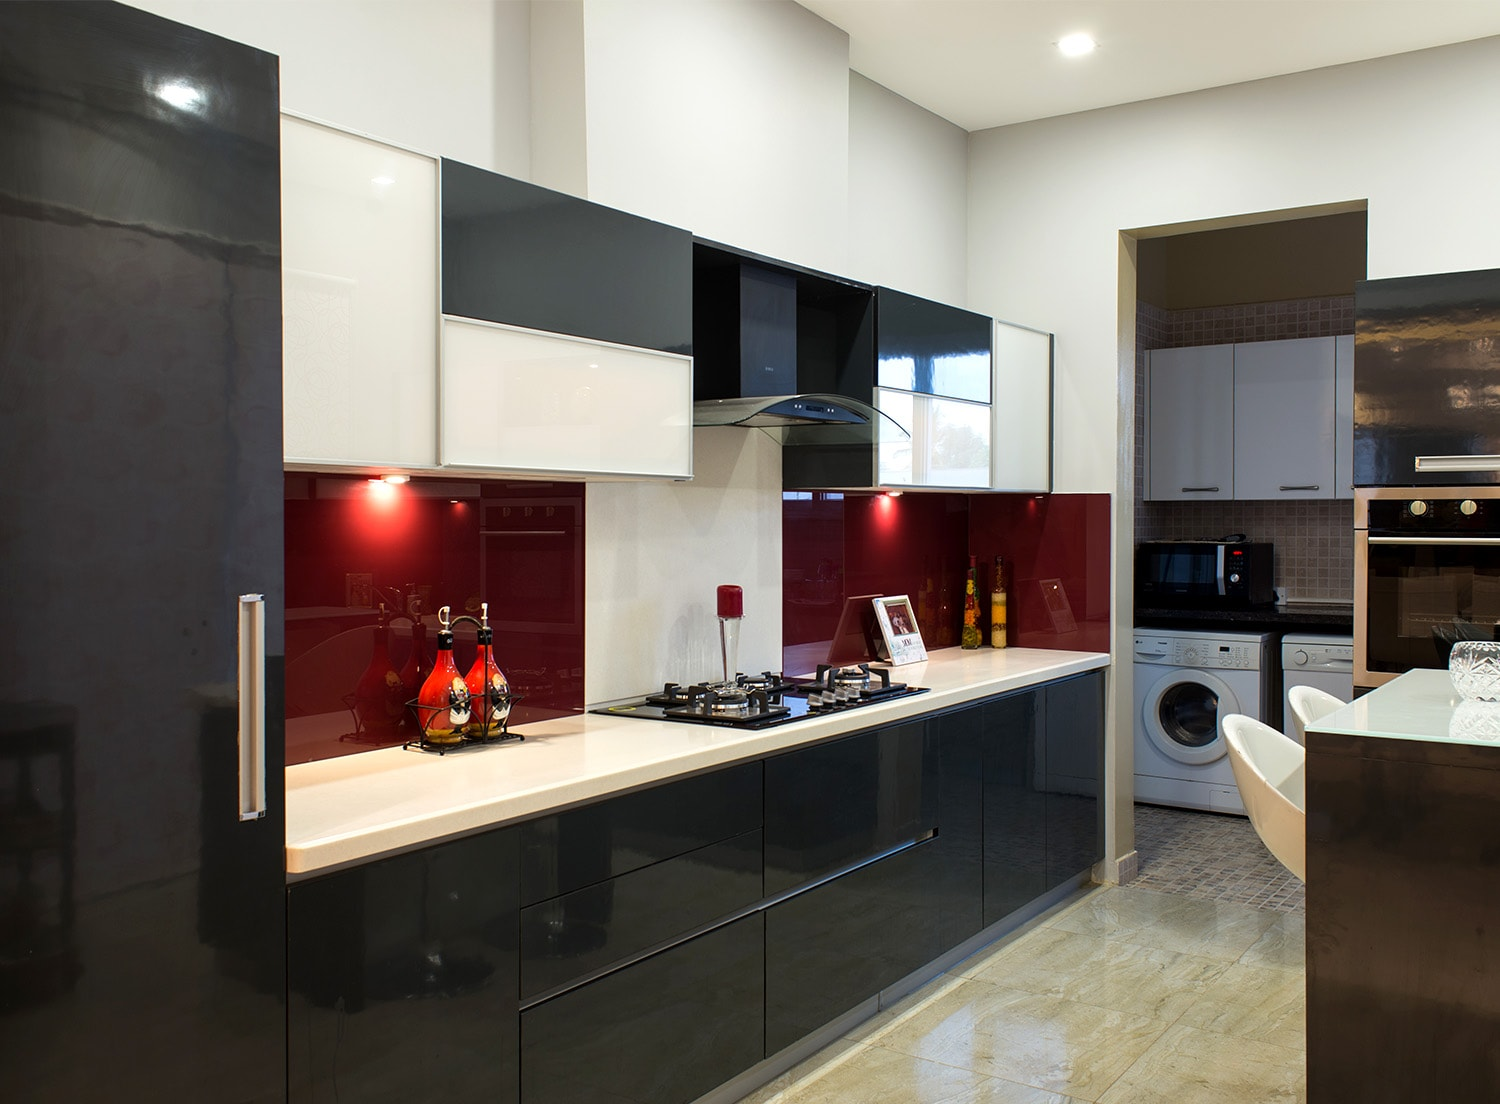 Of Kitchen Interiors Home Interiors By Homelane Modular Kitchens Wardrobes Storage